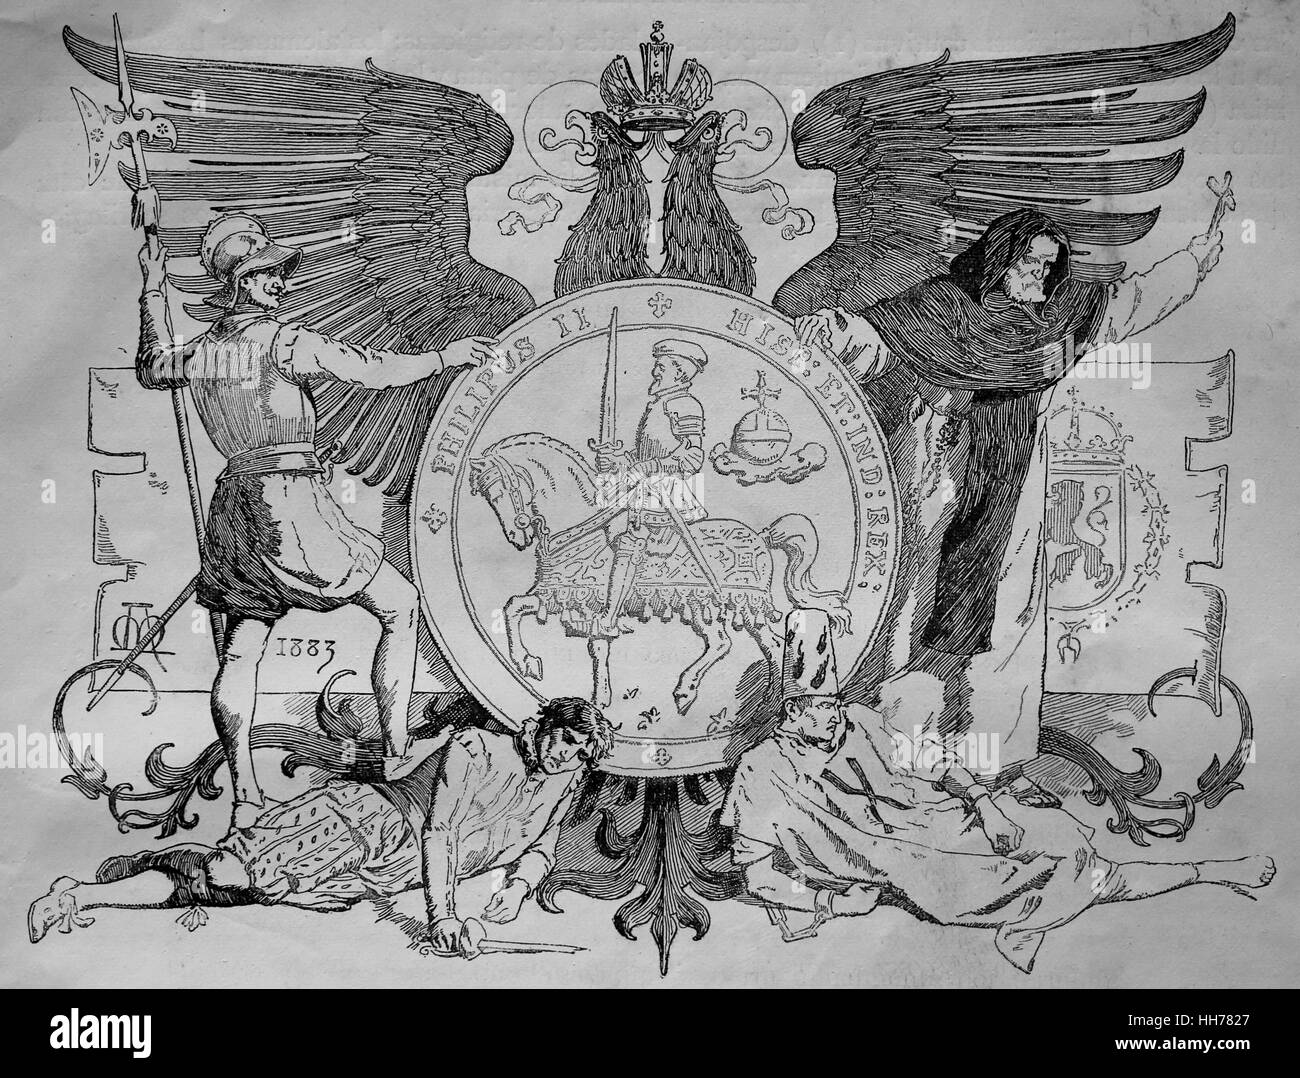 Reign of Philip II of Spain (1527-1598). Engraving, 1882. - Stock Image